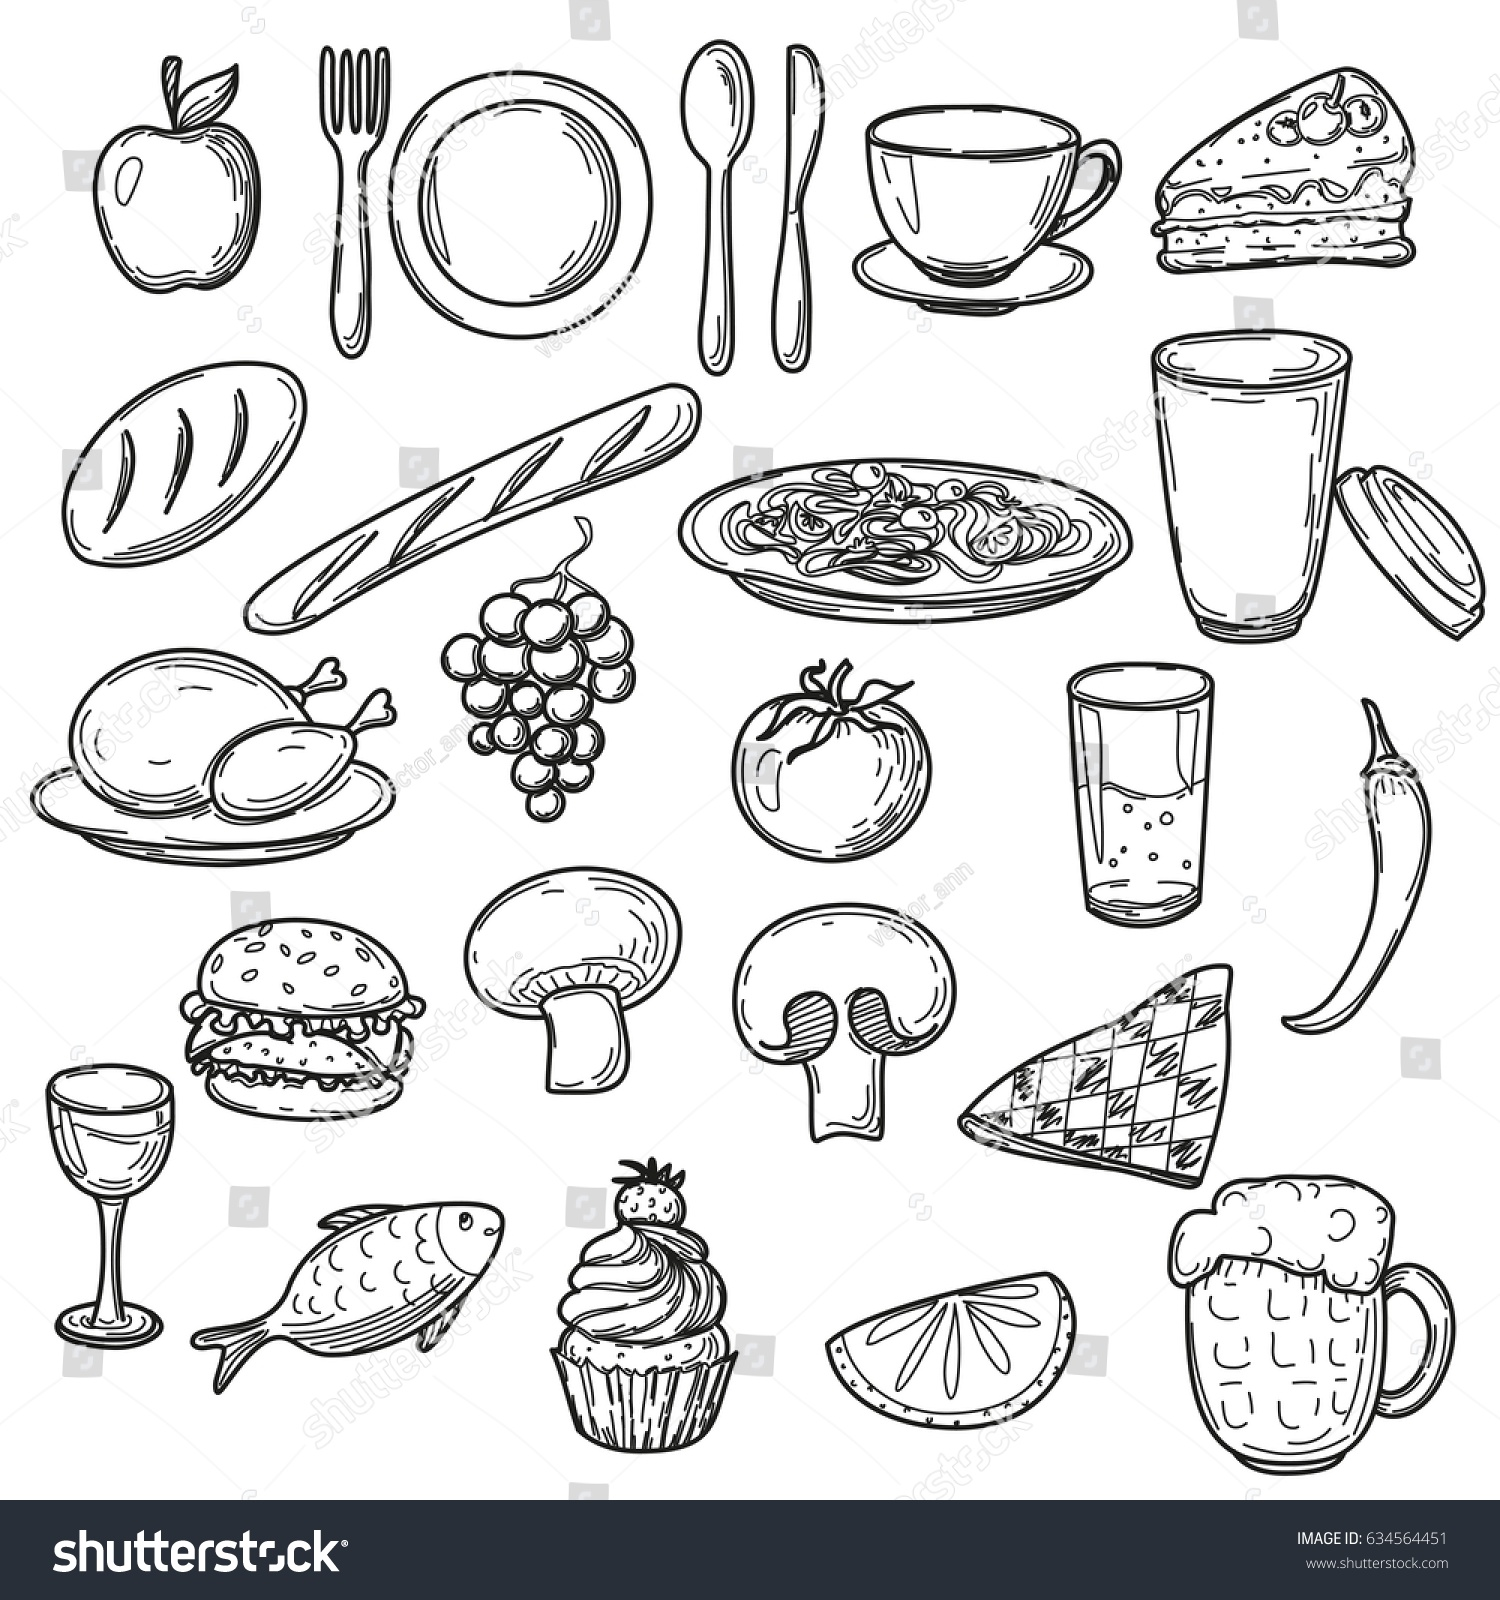 Hand Drawn Food Doodles Line Art Stock Vector Royalty Free